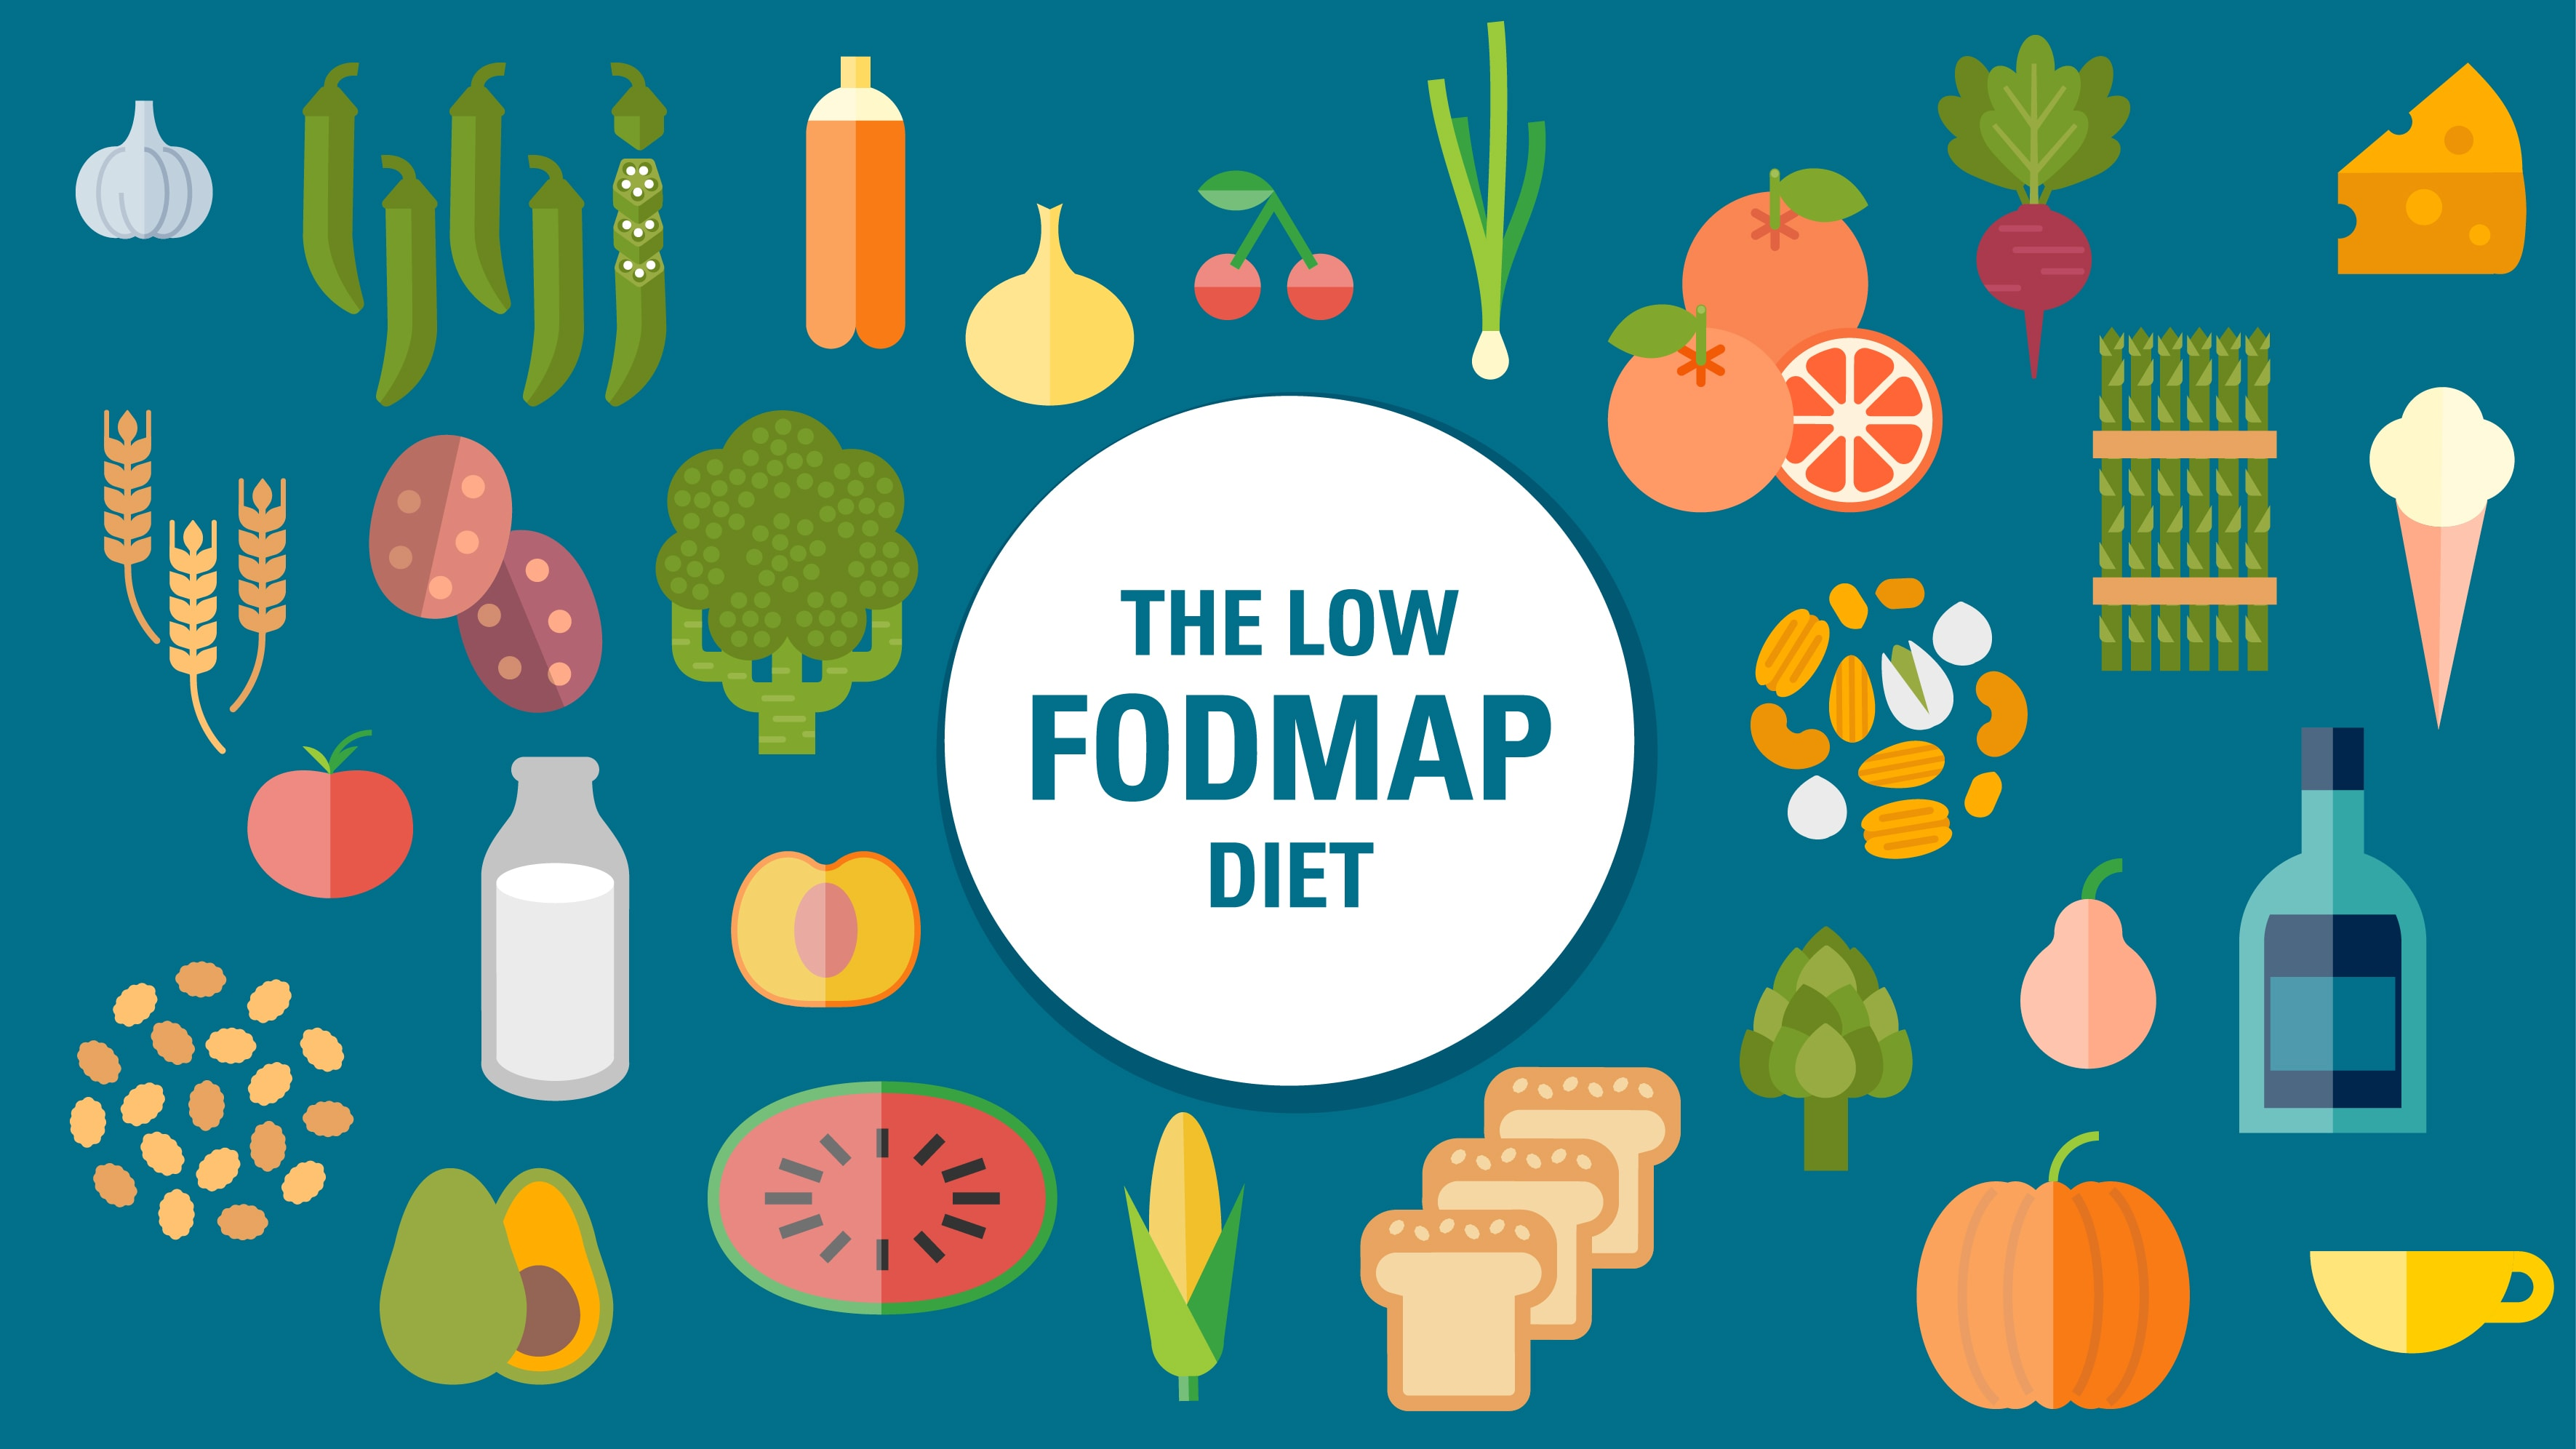 When It Comes To Easing Irritable Bowel Syndrome Ibs Through A Plan Known As The Low Fodmap T Success Isn Simple Following New Recipe